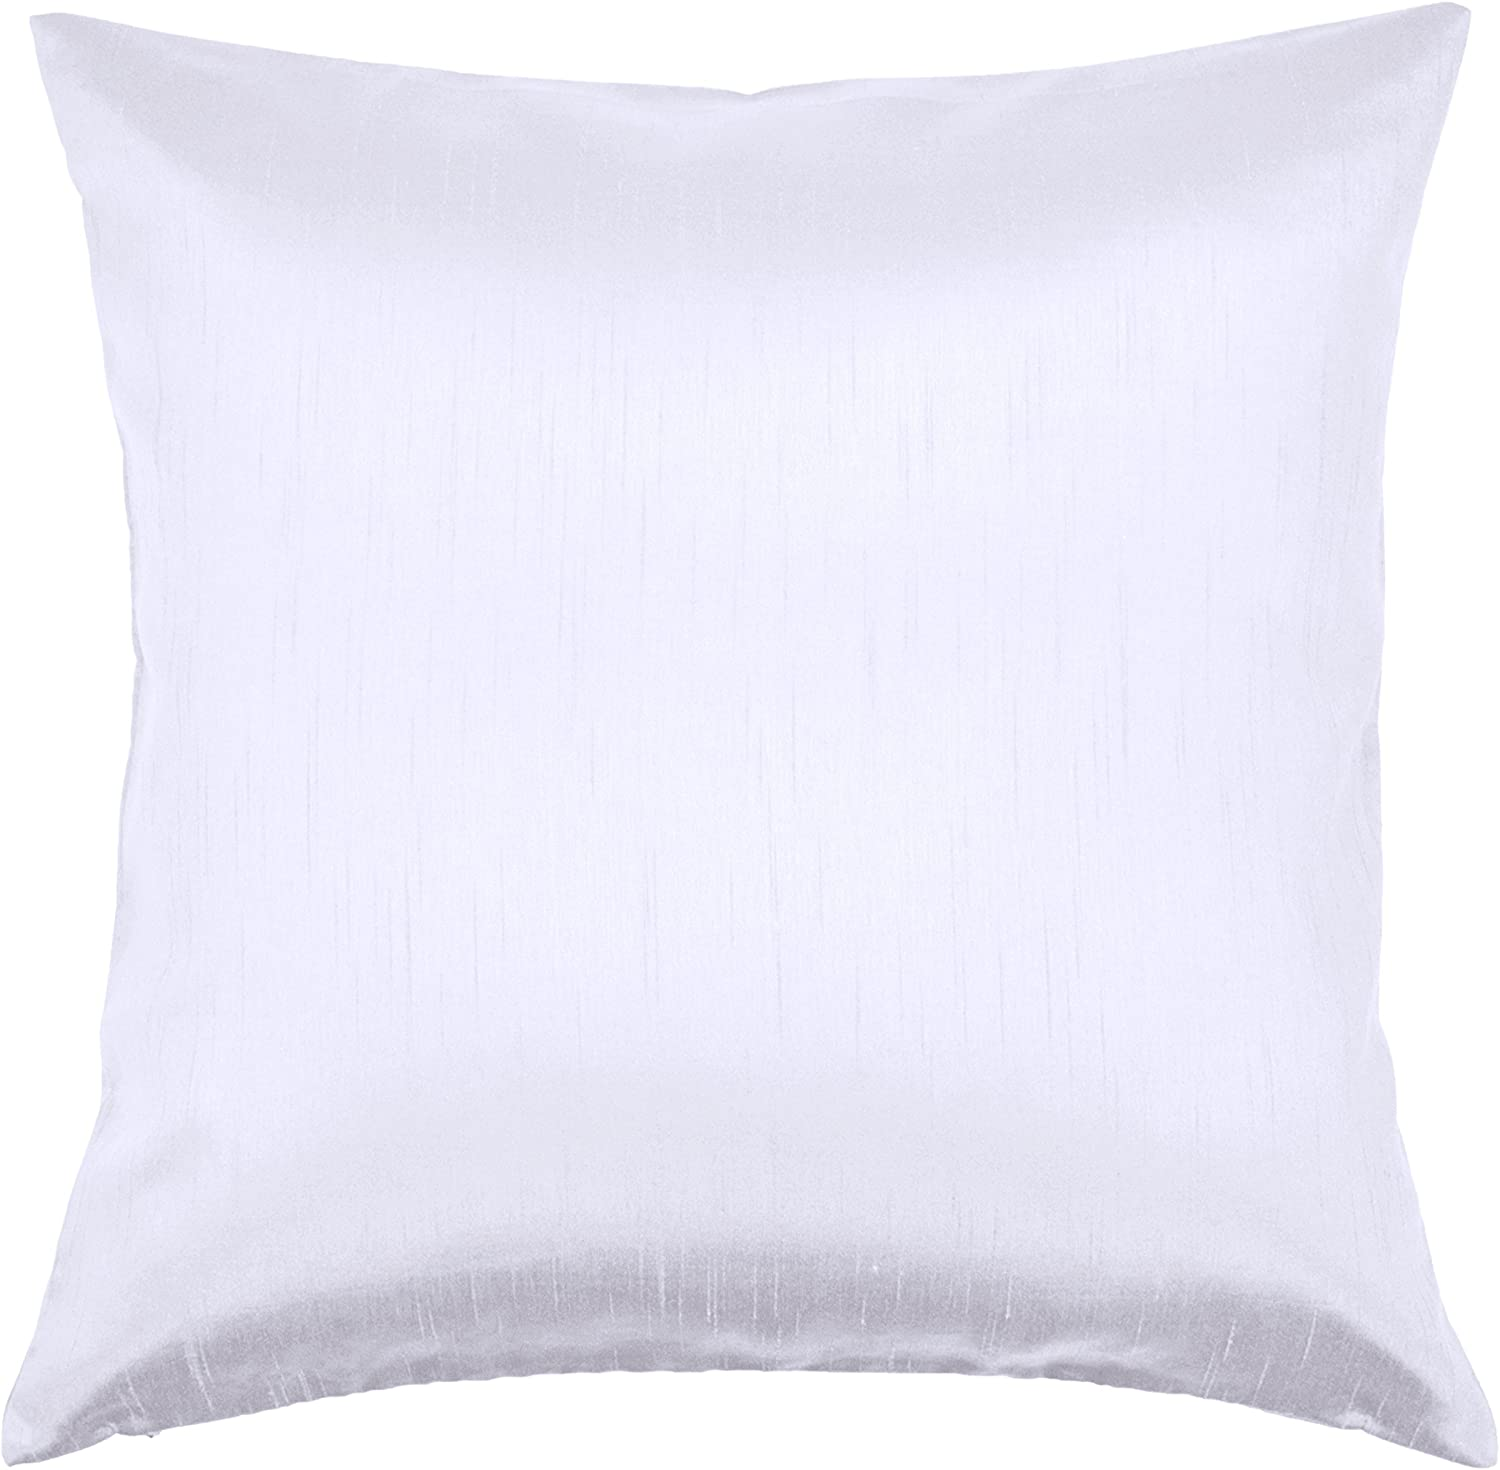 Aiking Home Solid Faux Silk Euro Sham/Pillow Cover, Zipper Closure, 26 by 26 Inches, Pure White